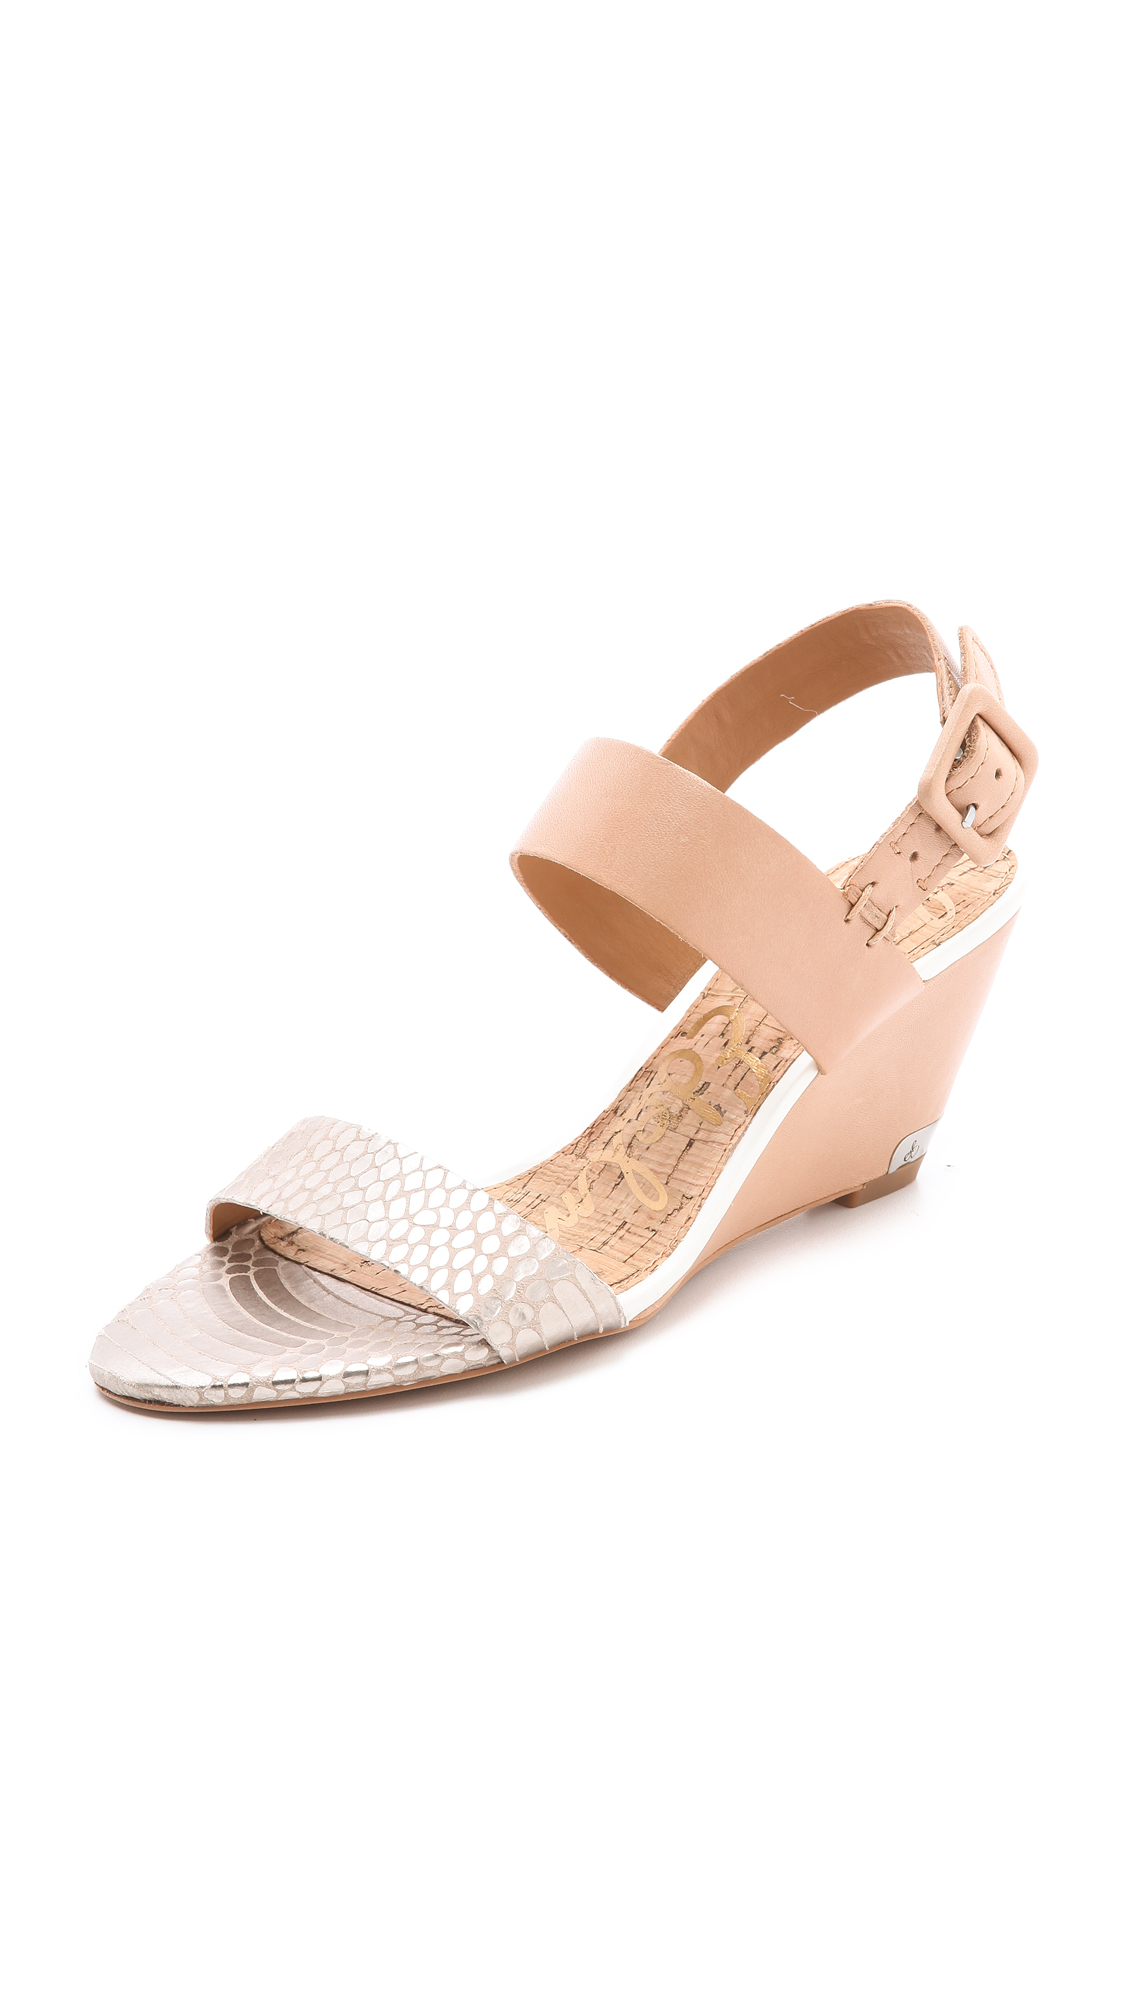 sam edelman sutton wedge sandals in beige lyst